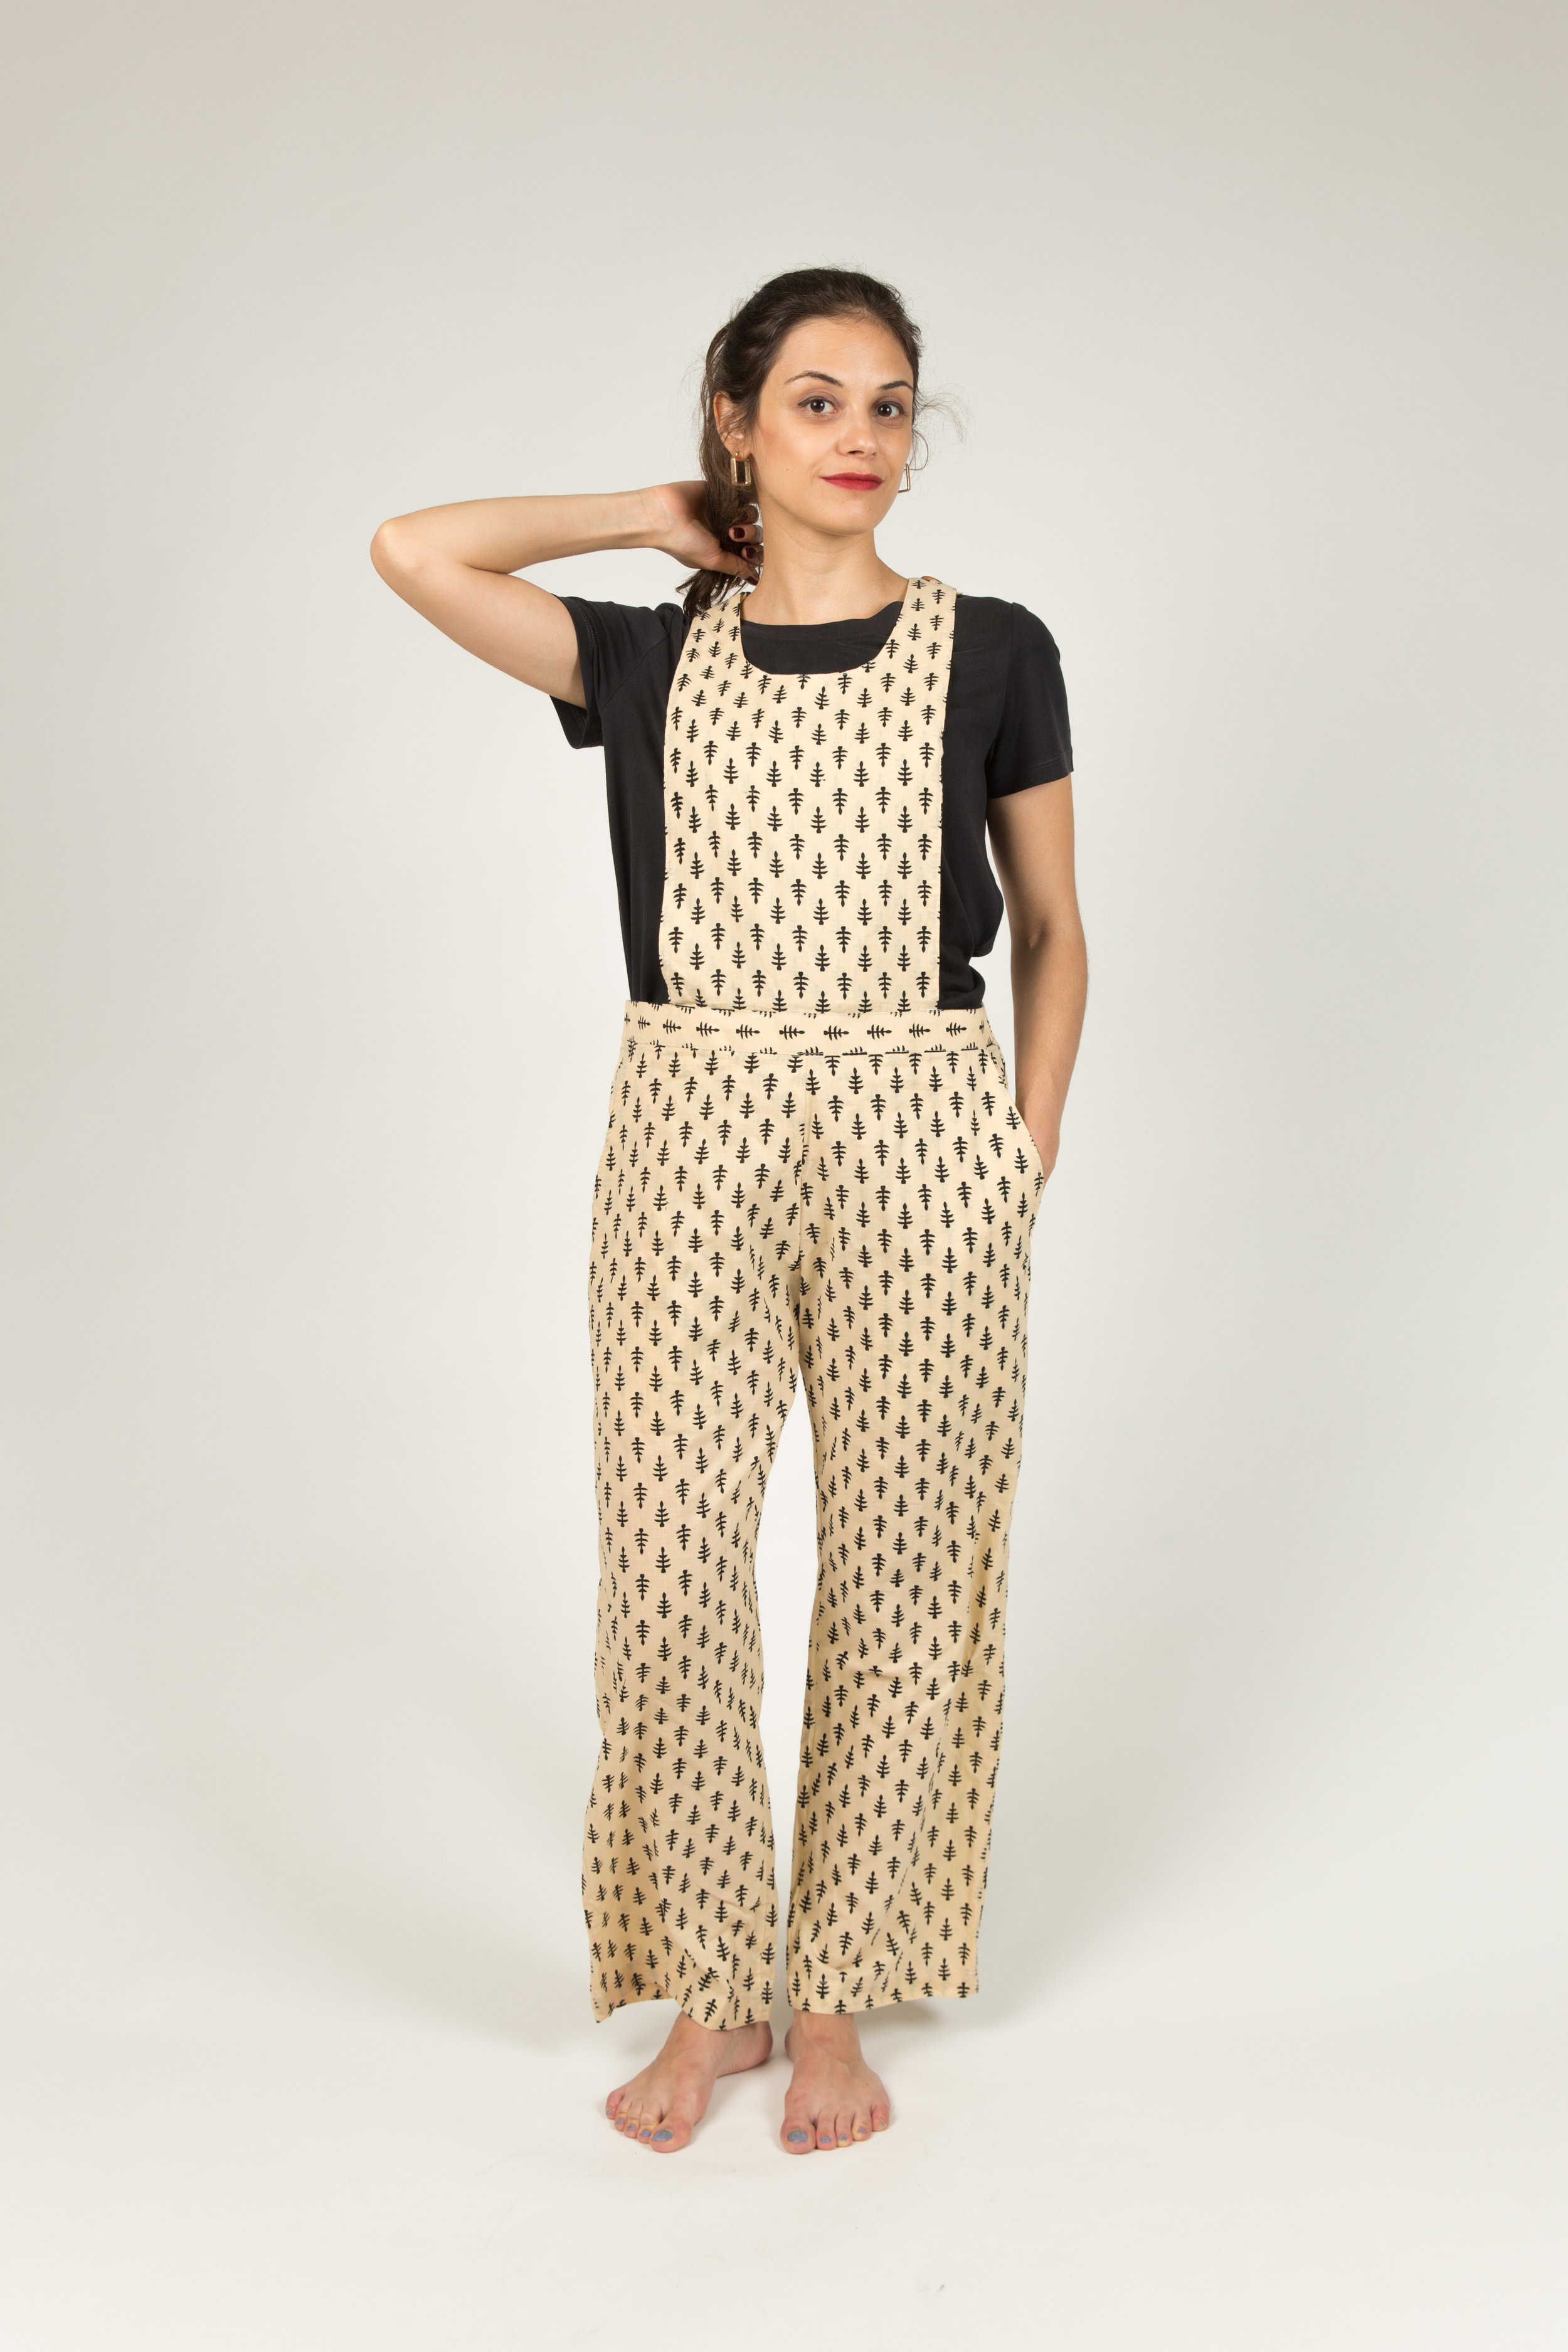 BECKY BLACK AND WHITE OVERALL100% BENGALI COTTON -